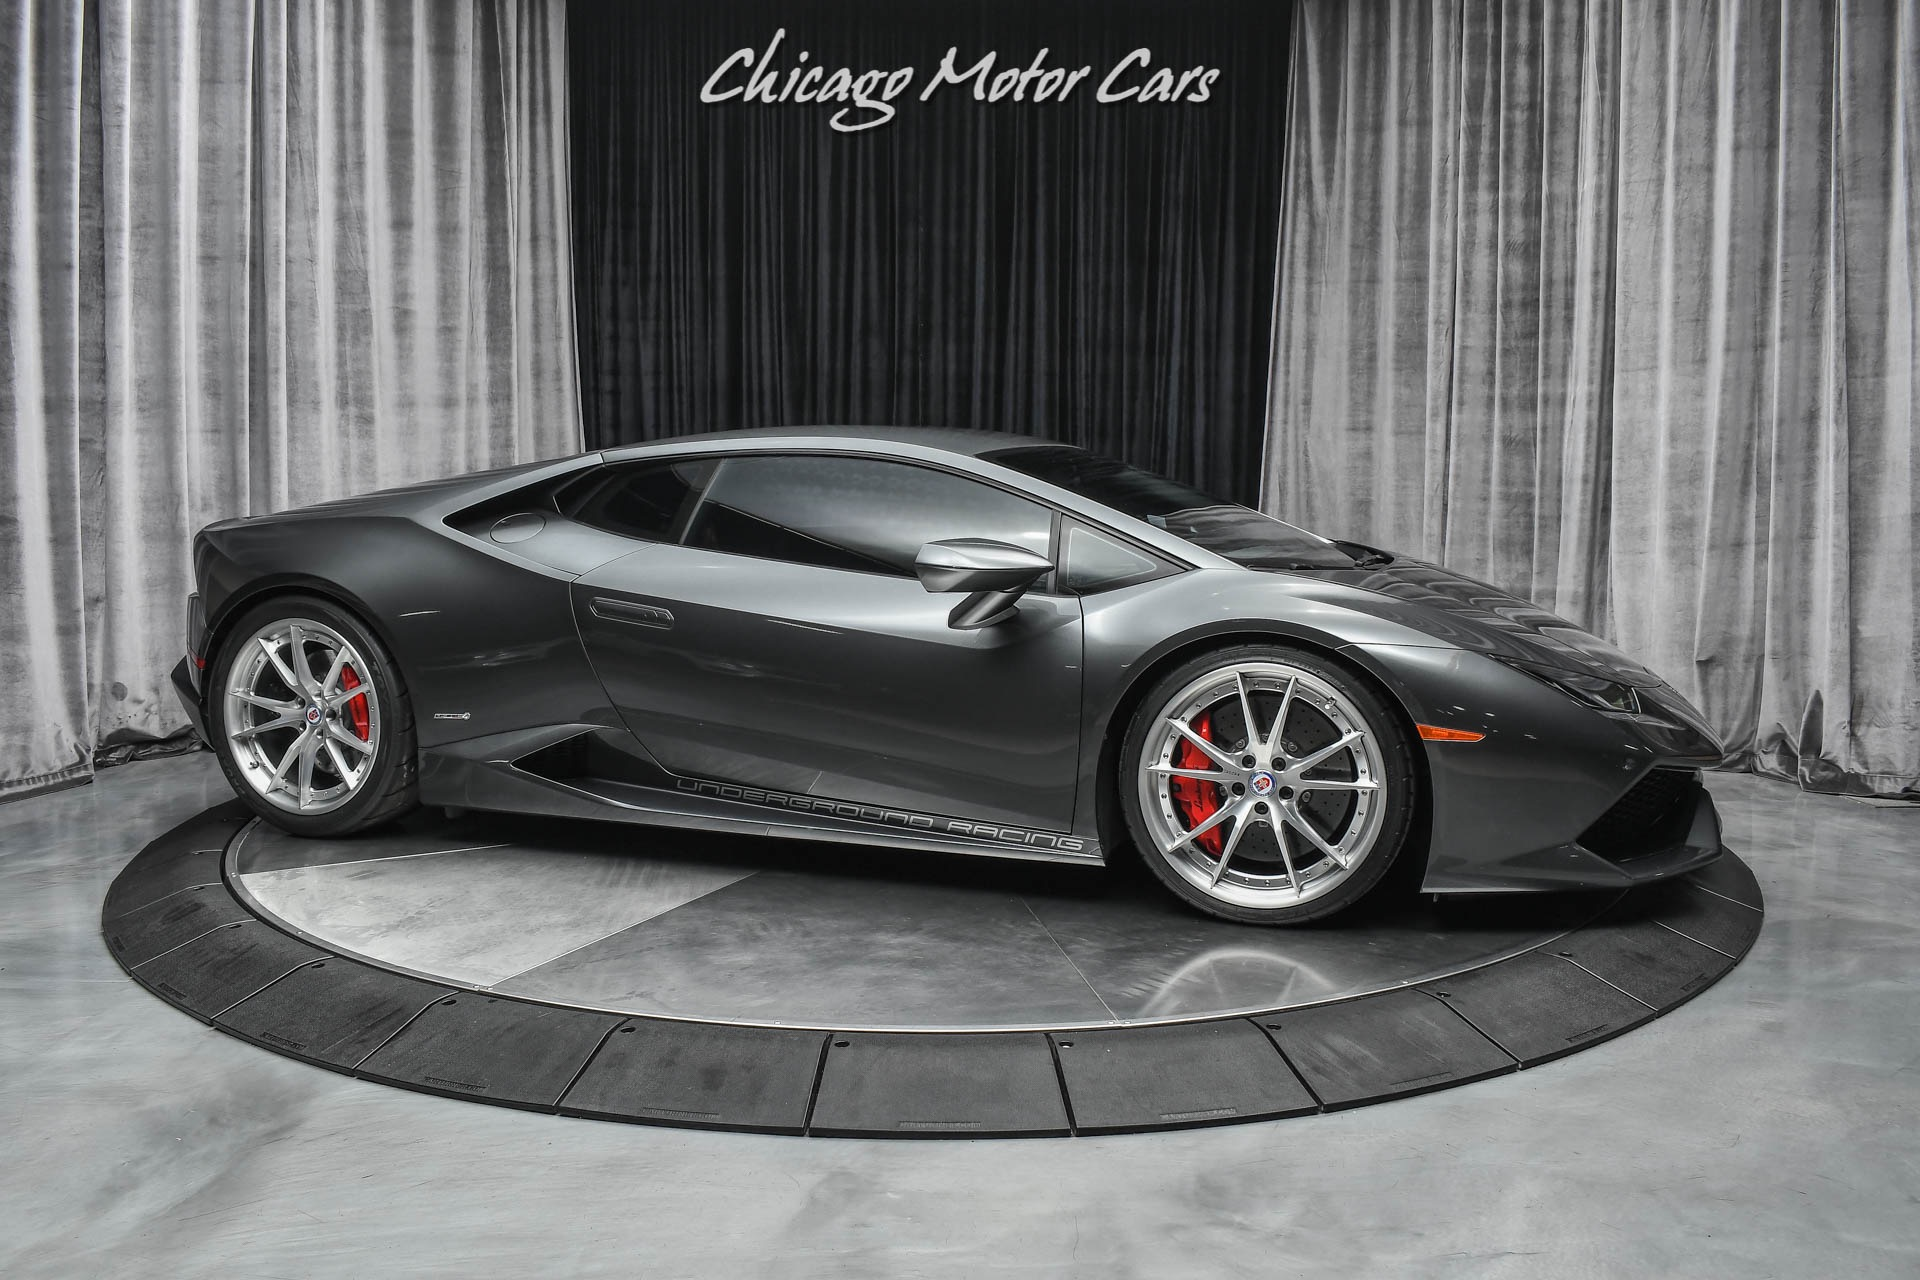 Used-2015-Lamborghini-Huracan-LP-610-4-UNDERGROUND-RACING-STAGE-3-1400WHP-BILLET-TRANS